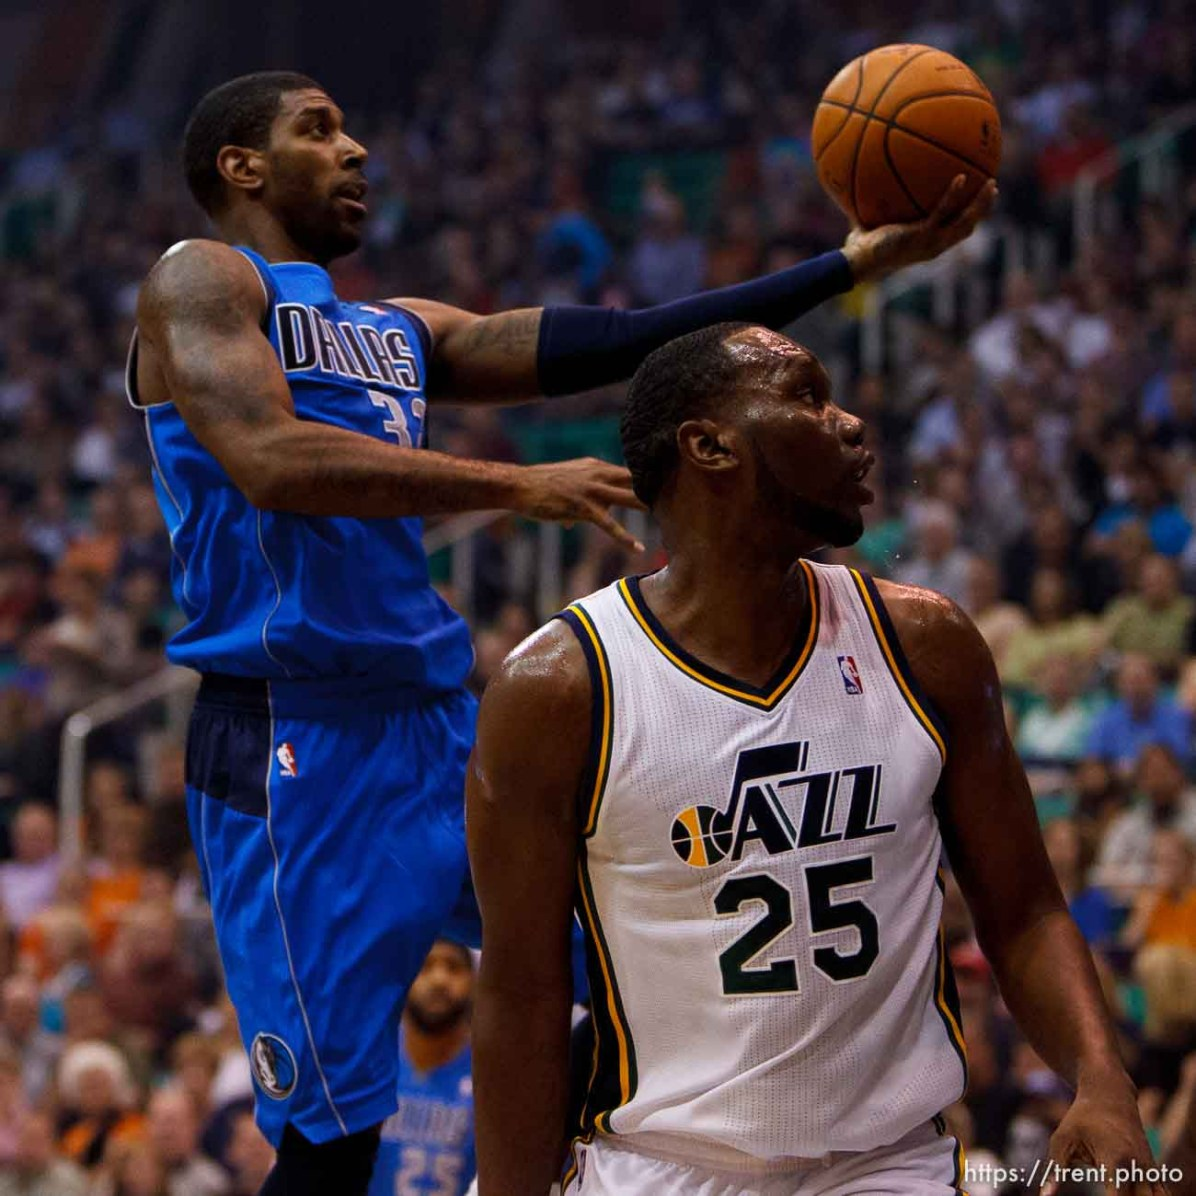 Trent Nelson | The Salt Lake Tribune Dallas's O.J. Mayo shoots over Utah Jazz center/forward Al Jefferson (25) as the Utah Jazz host the Dallas Mavericks, NBA basketball, Wednesday October 31, 2012 at EnergySolutions Arena in Salt Lake City, Utah.